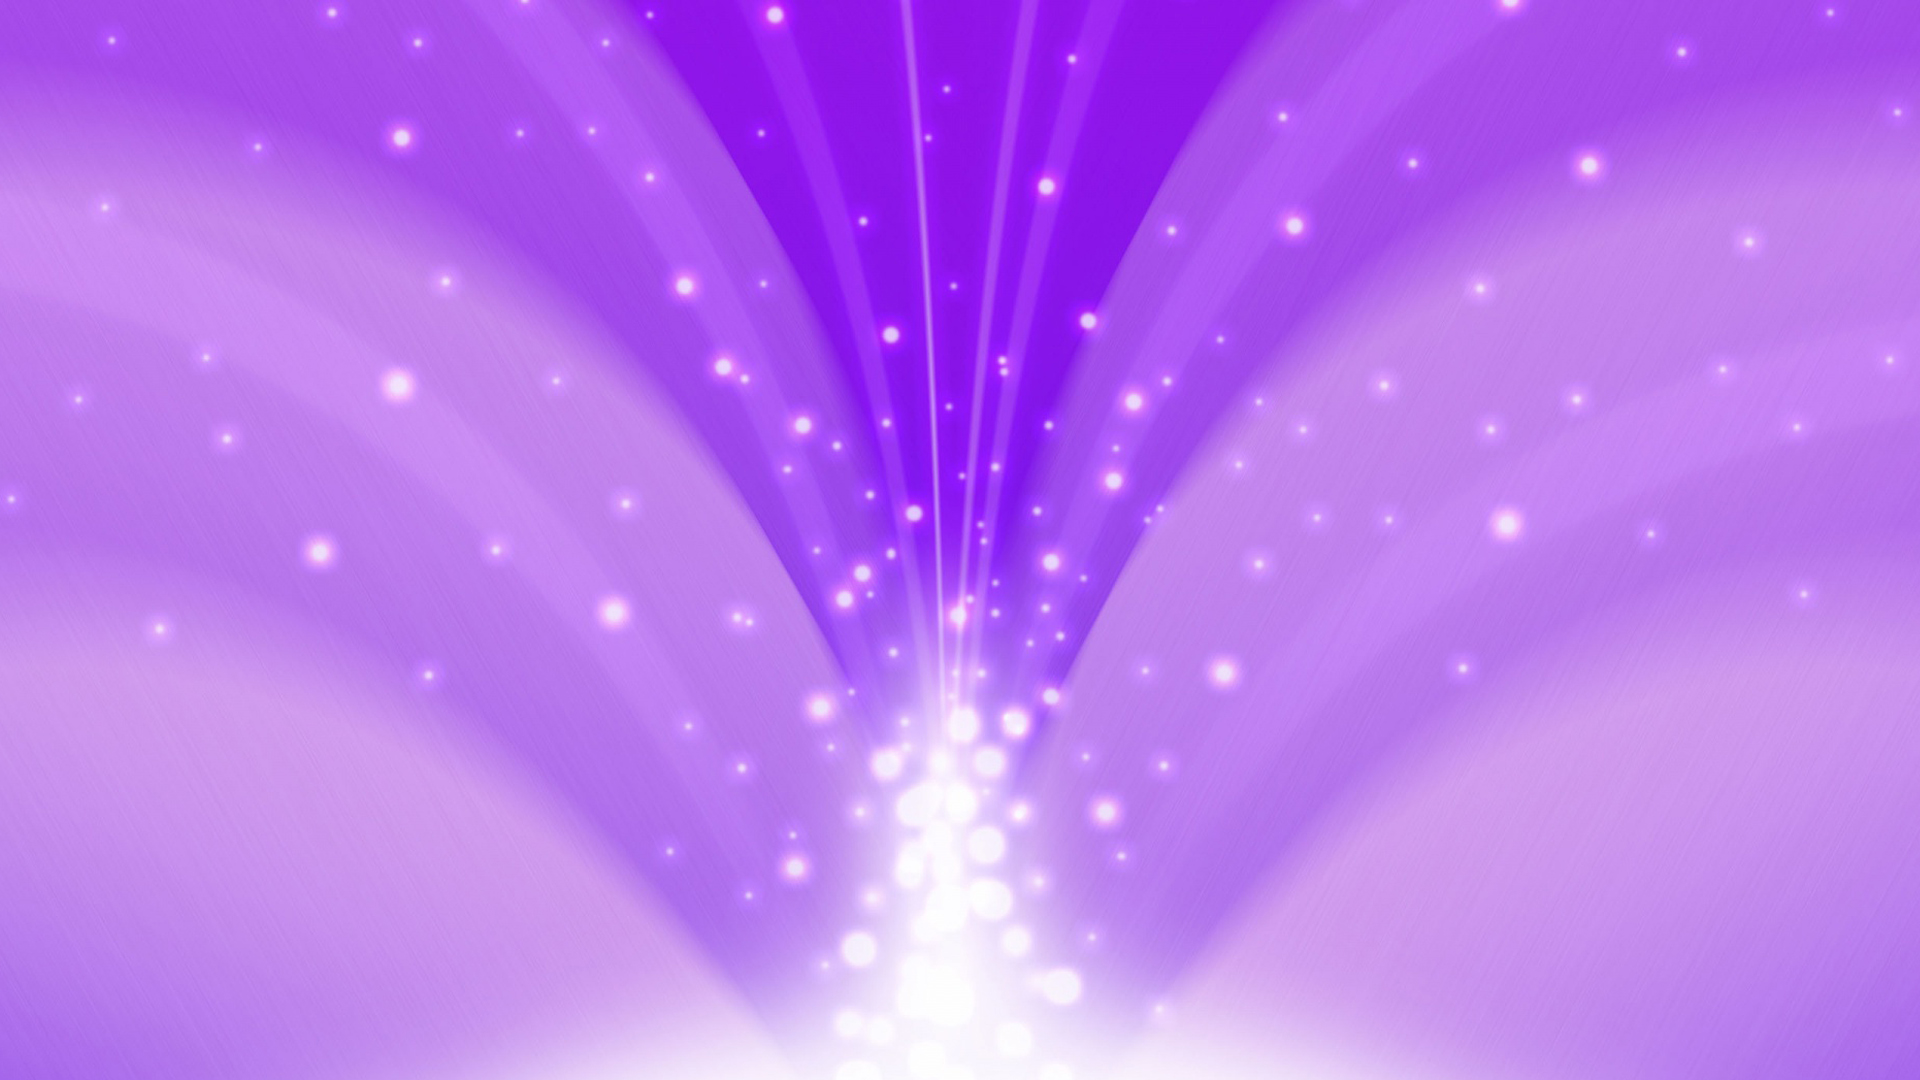 Simple light p... Simple Light Purple Backgrounds Light purple 10 wallpaper